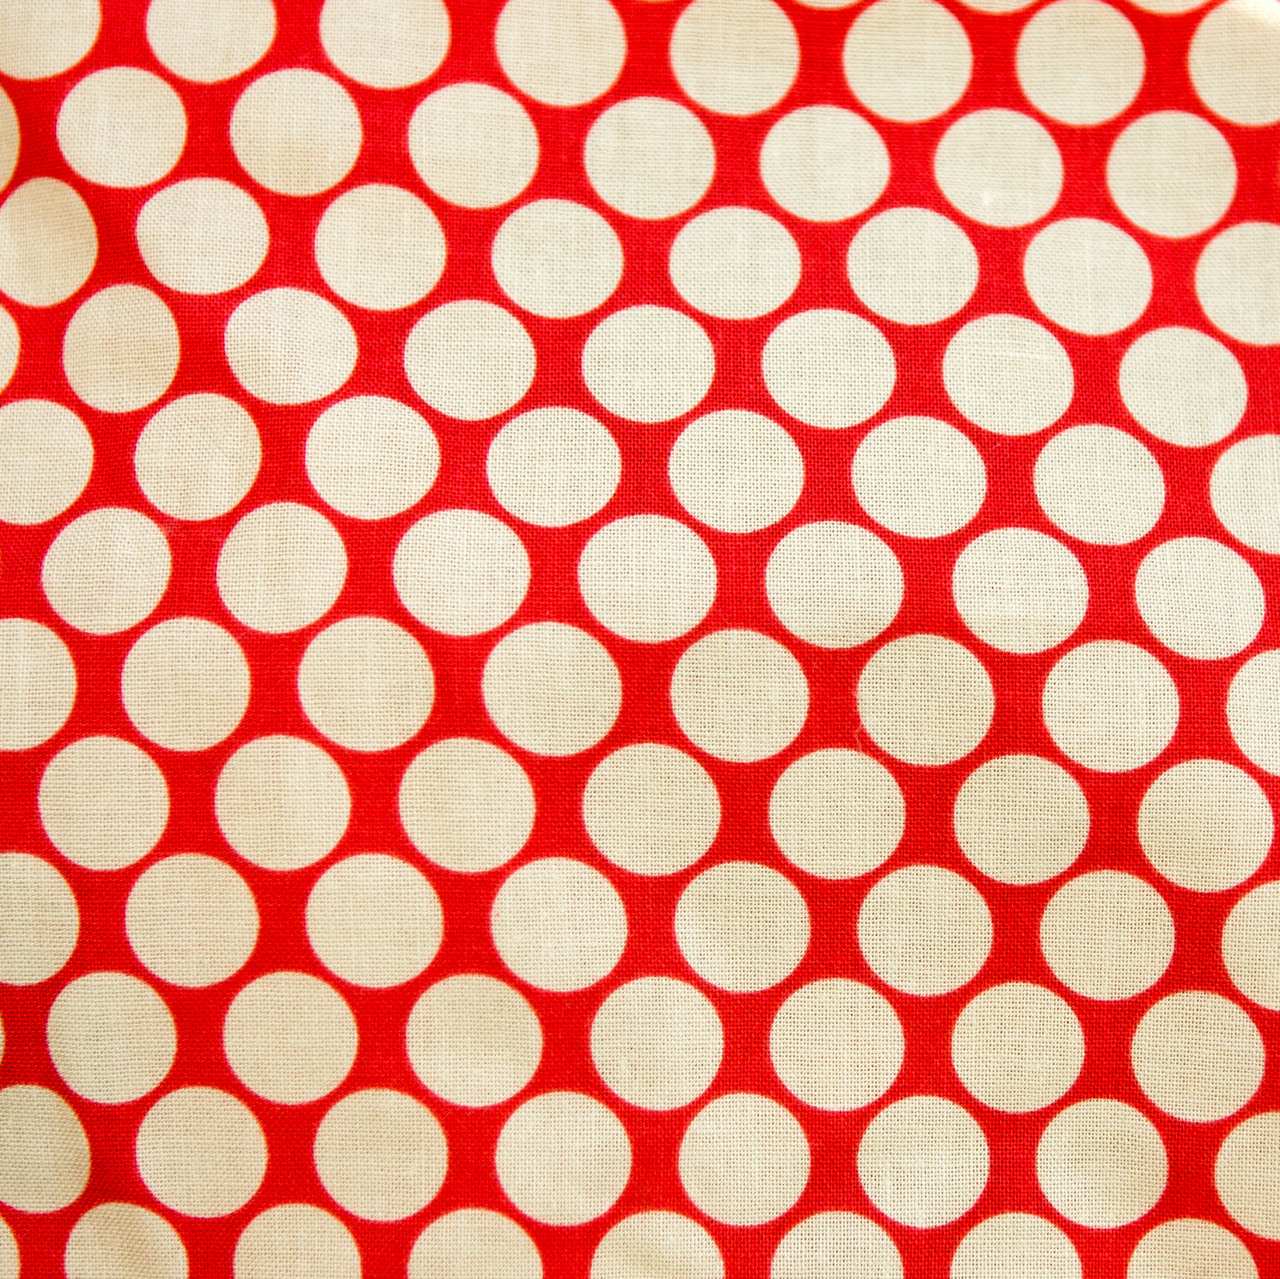 Peppermint Polkadots print